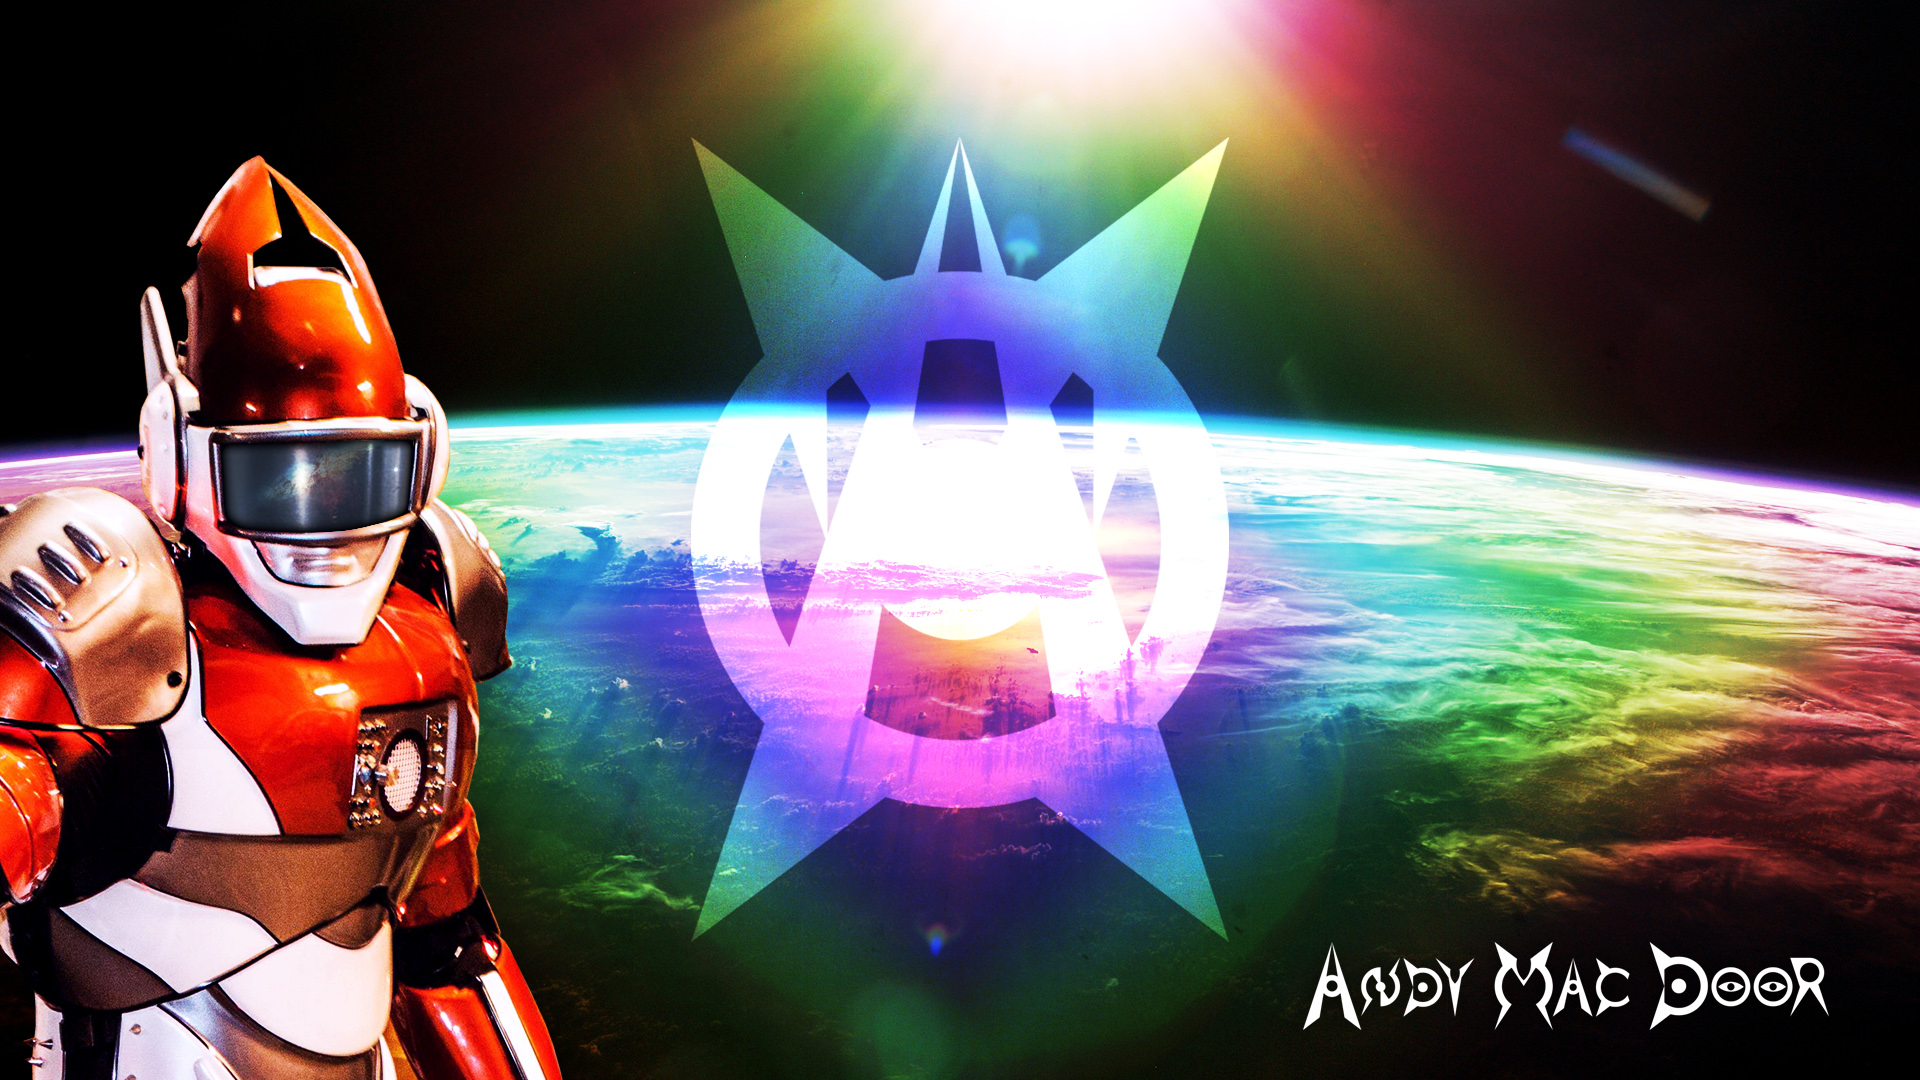 Andy Mac Door - Space wallpaper 03